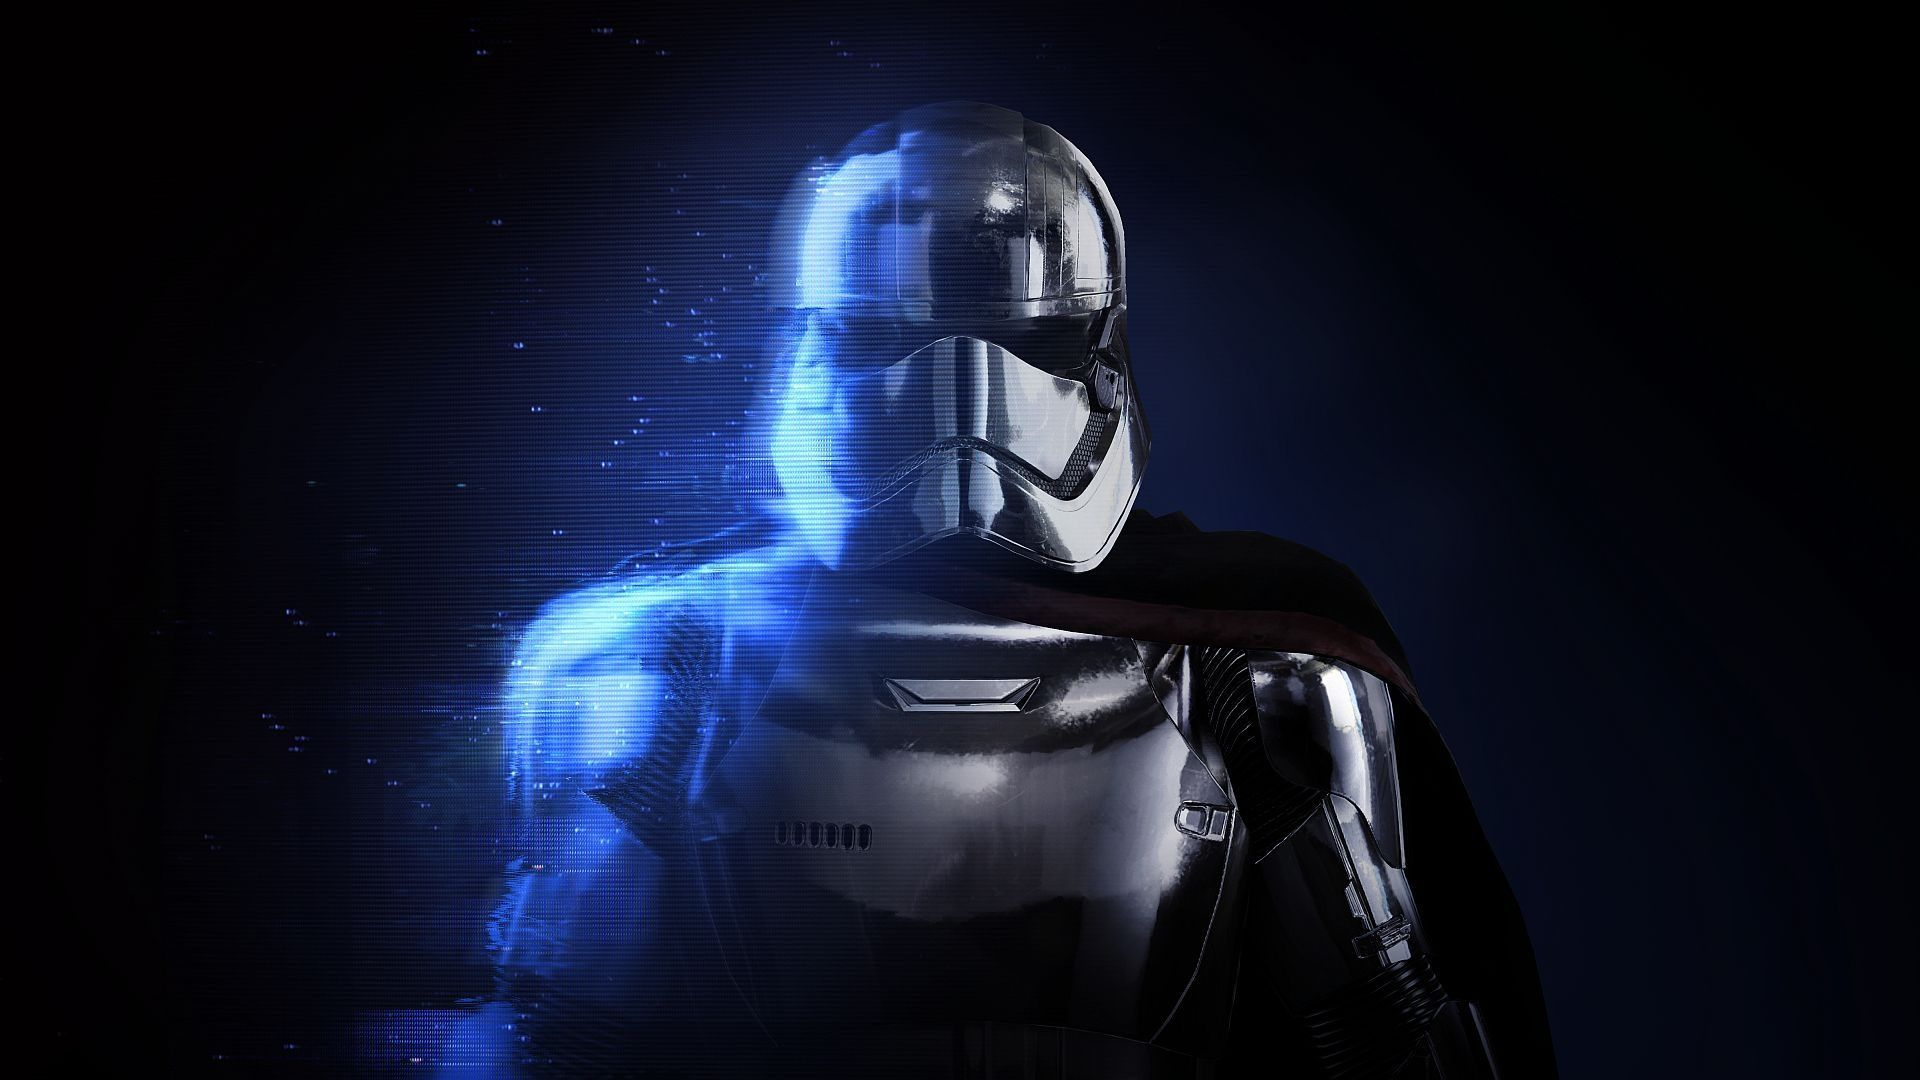 Wallpaper Captain Phasma, Star Wars Battlefront II, HD, Games, #11120